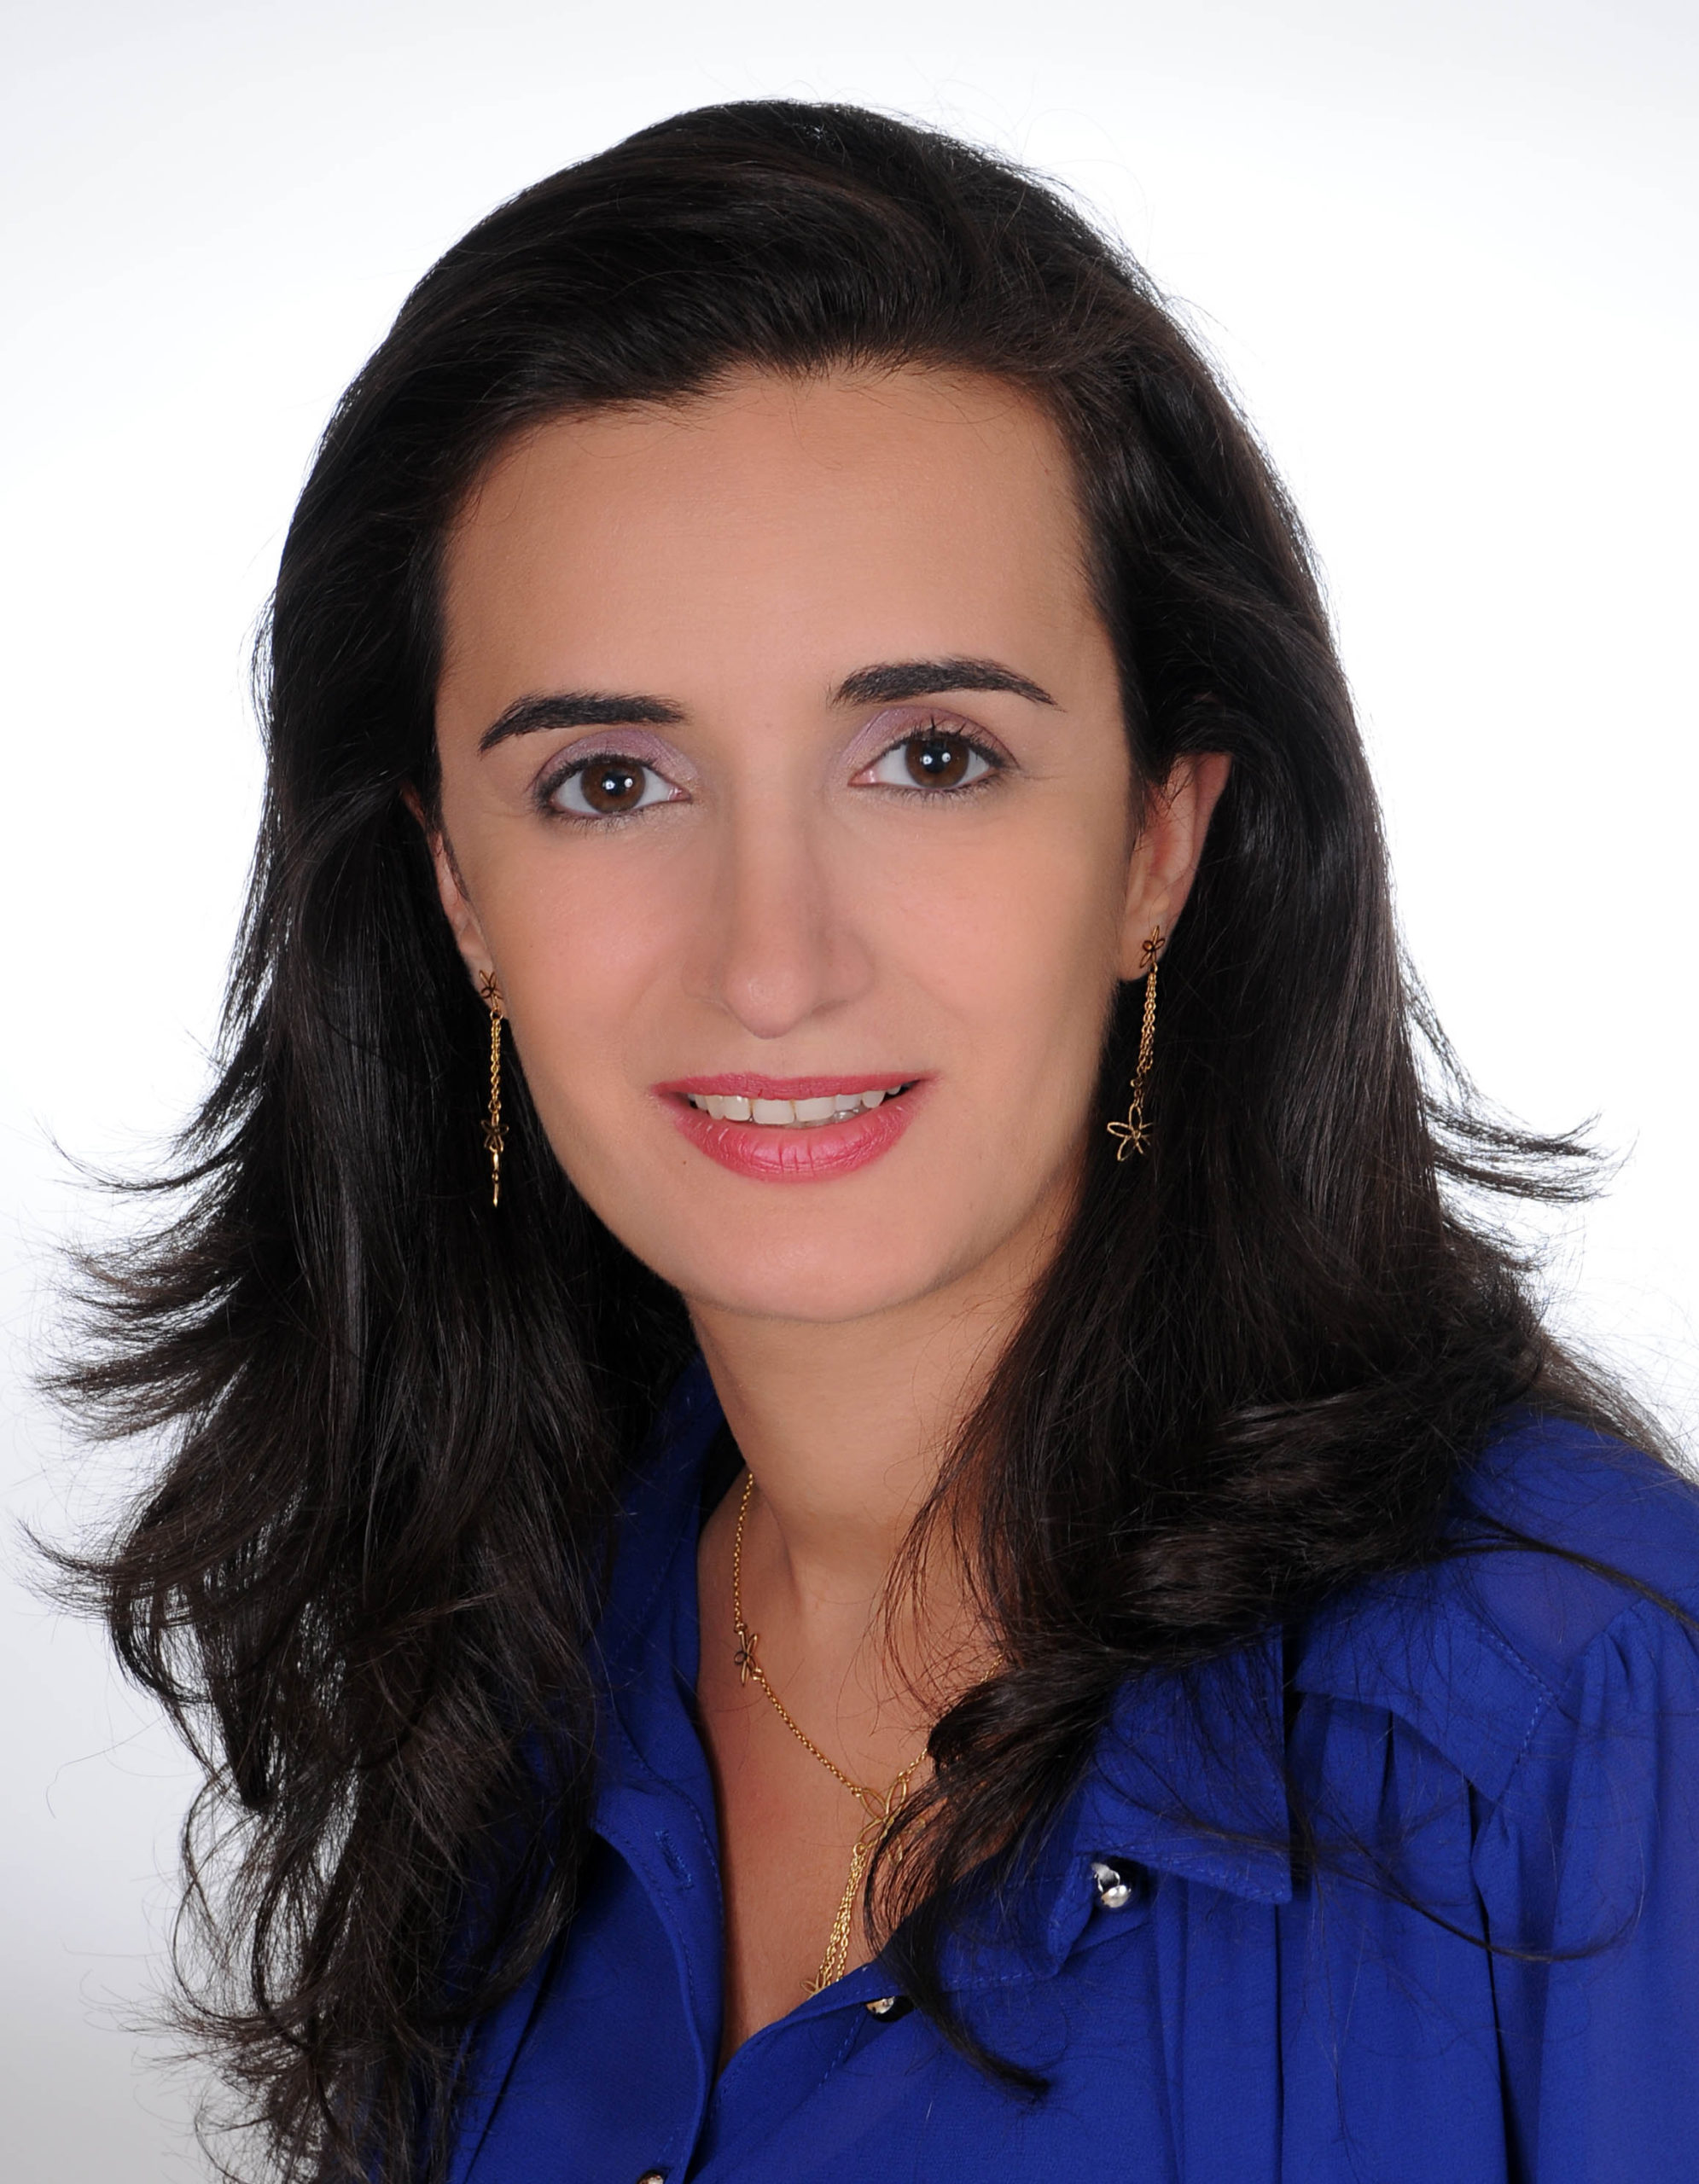 Pr Marianne Abi Fadel awarded the Christophe Mérieux 2021 prize